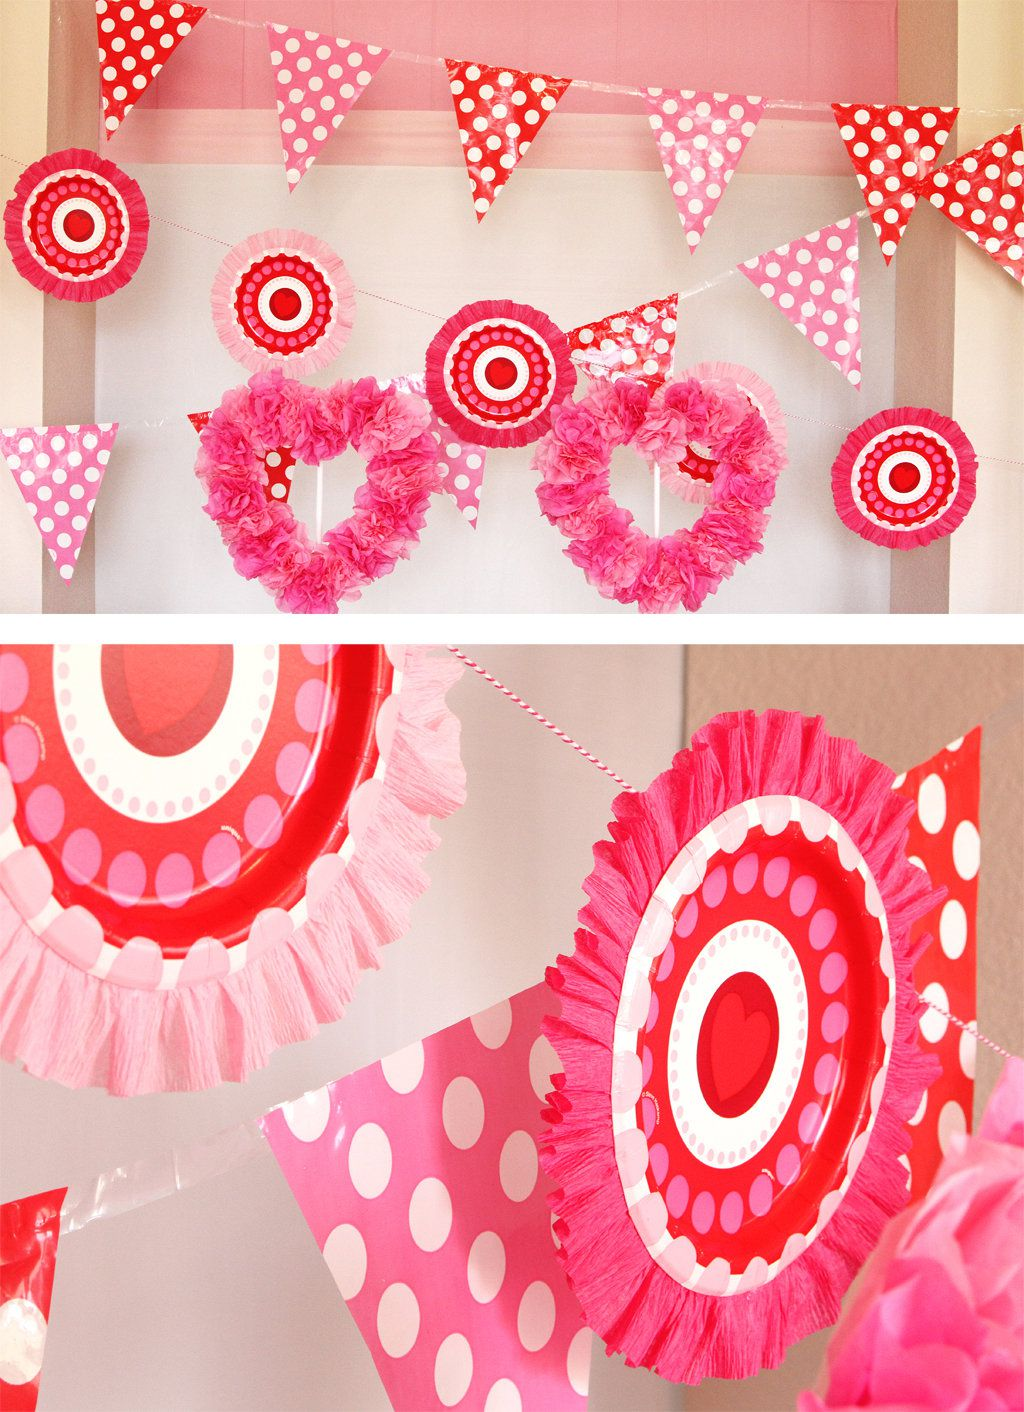 day backdrop pin decorations love lovey dovey gleamitup tutorial to diy valentine celebrate decor s heart valentines